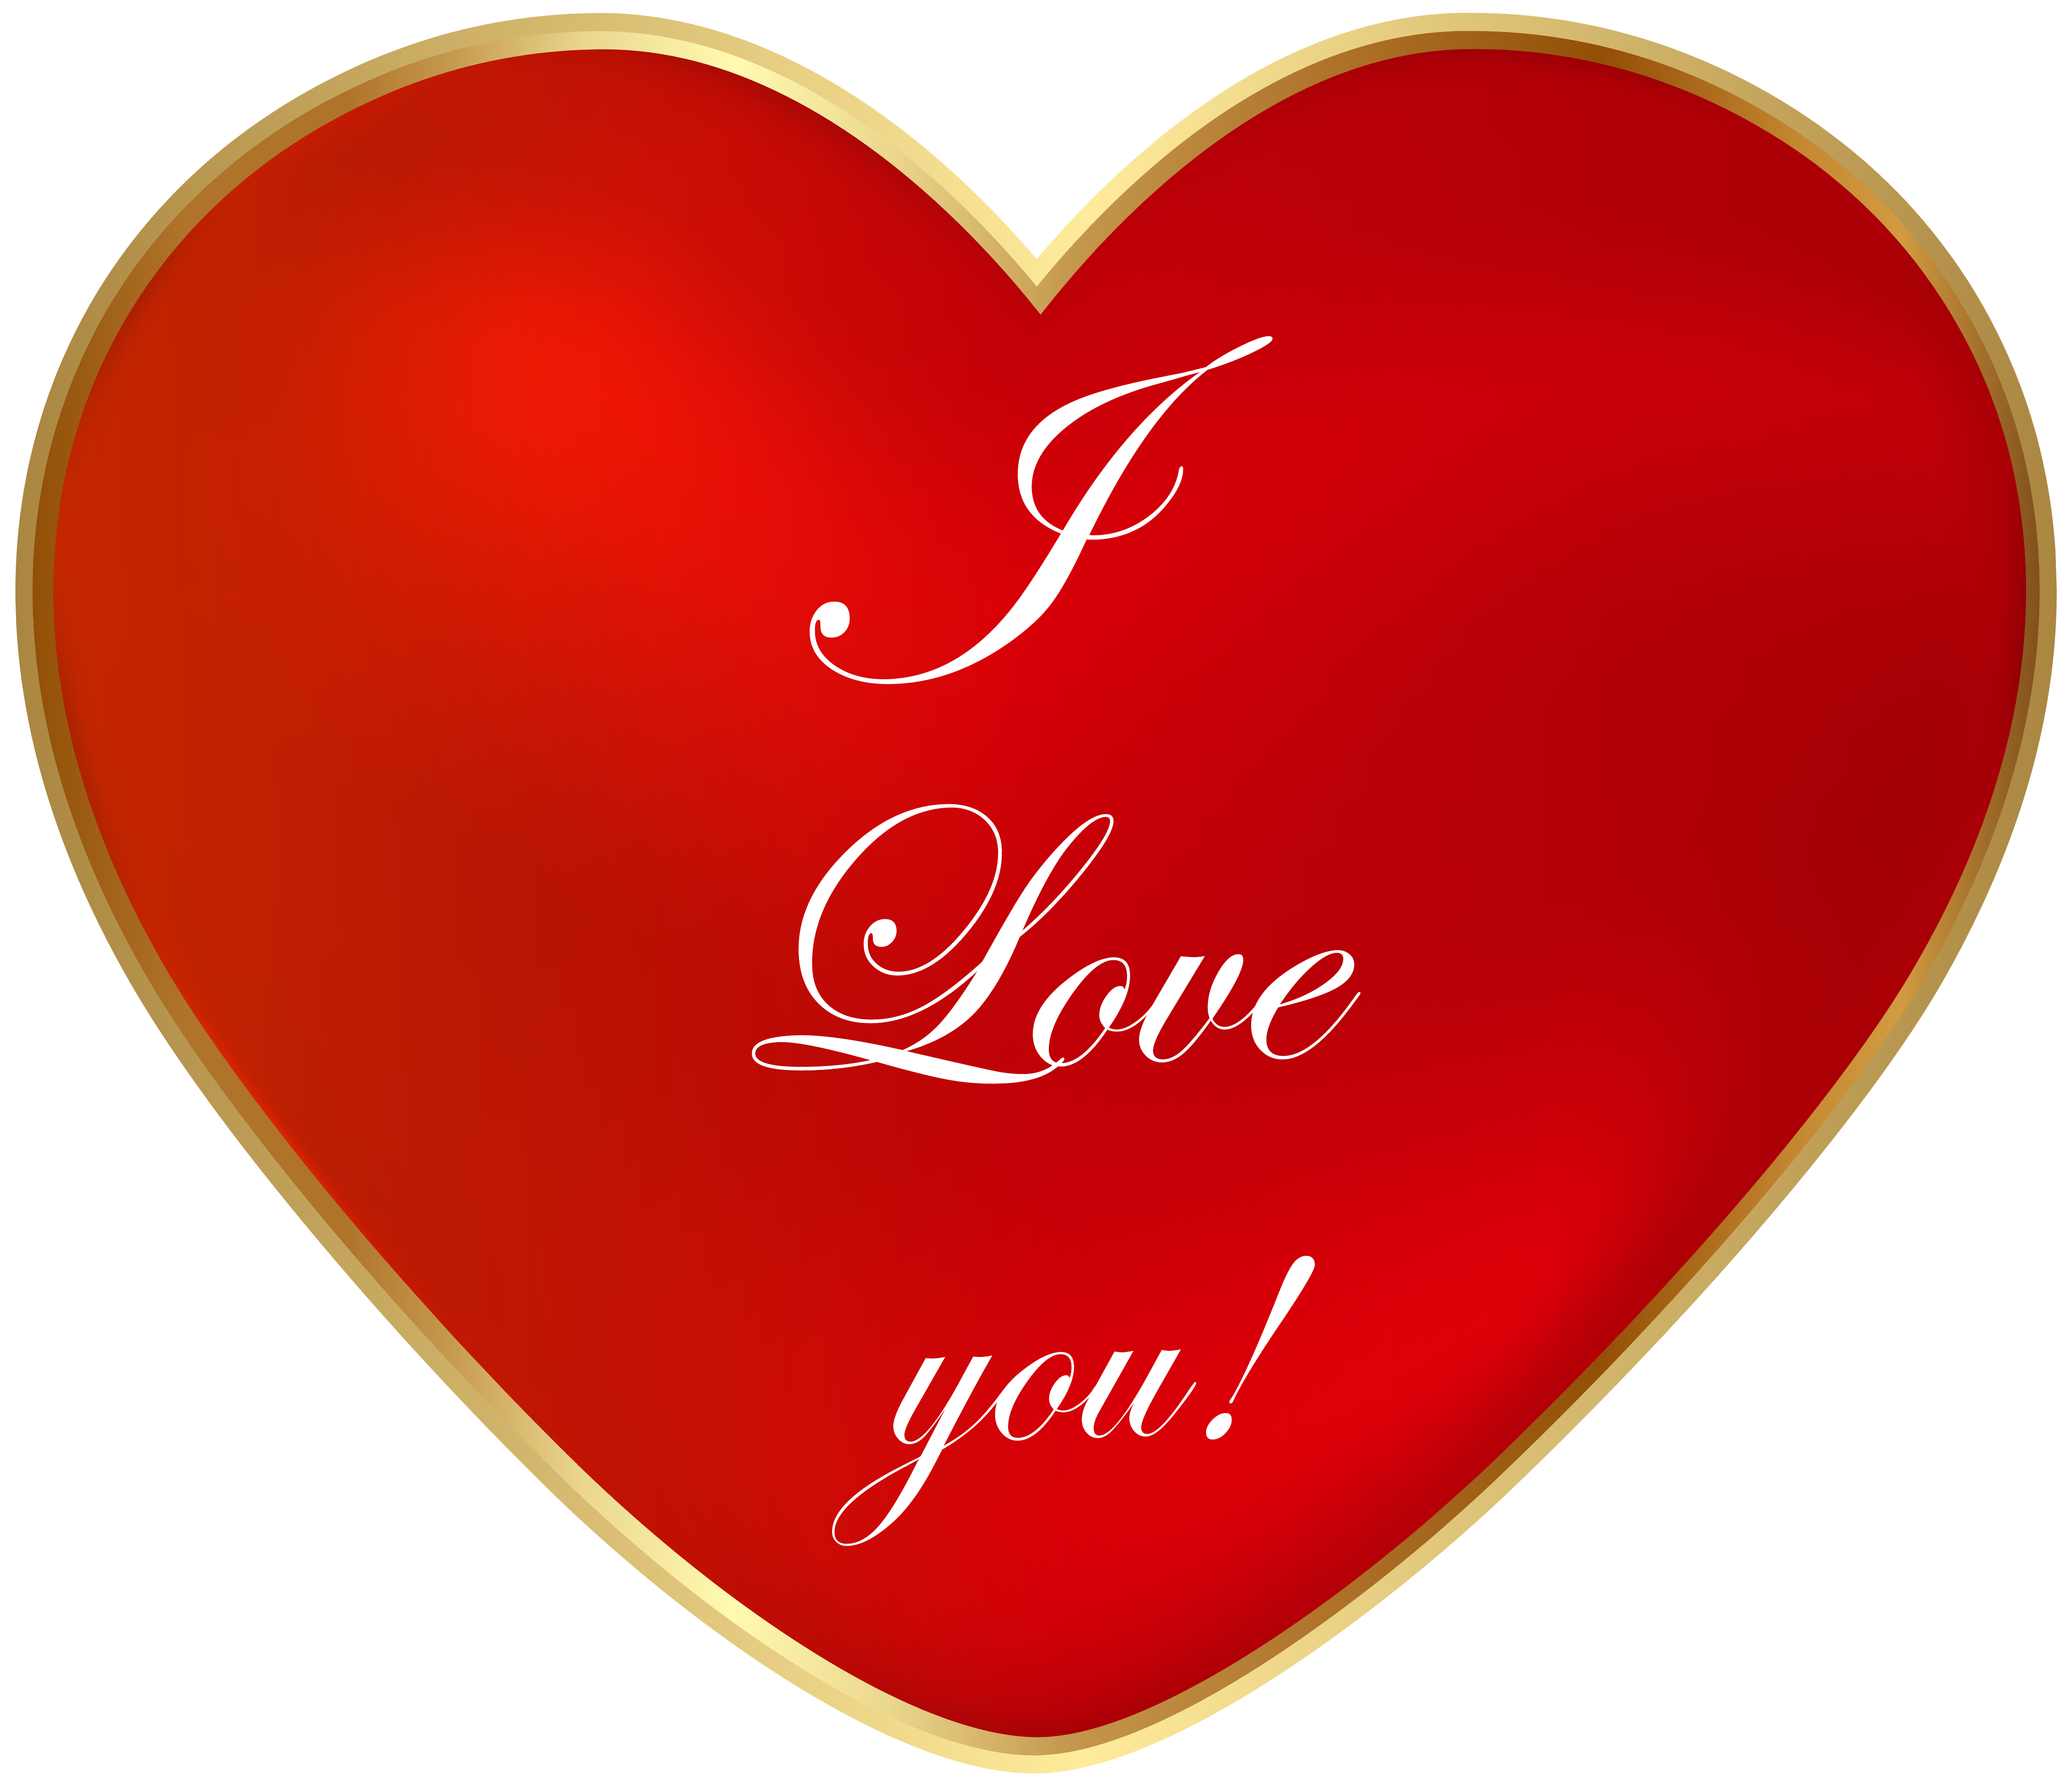 Heart love clipart svg download I Love You Heart Clip Art PNG Image   Gallery Yopriceville - High ... svg download